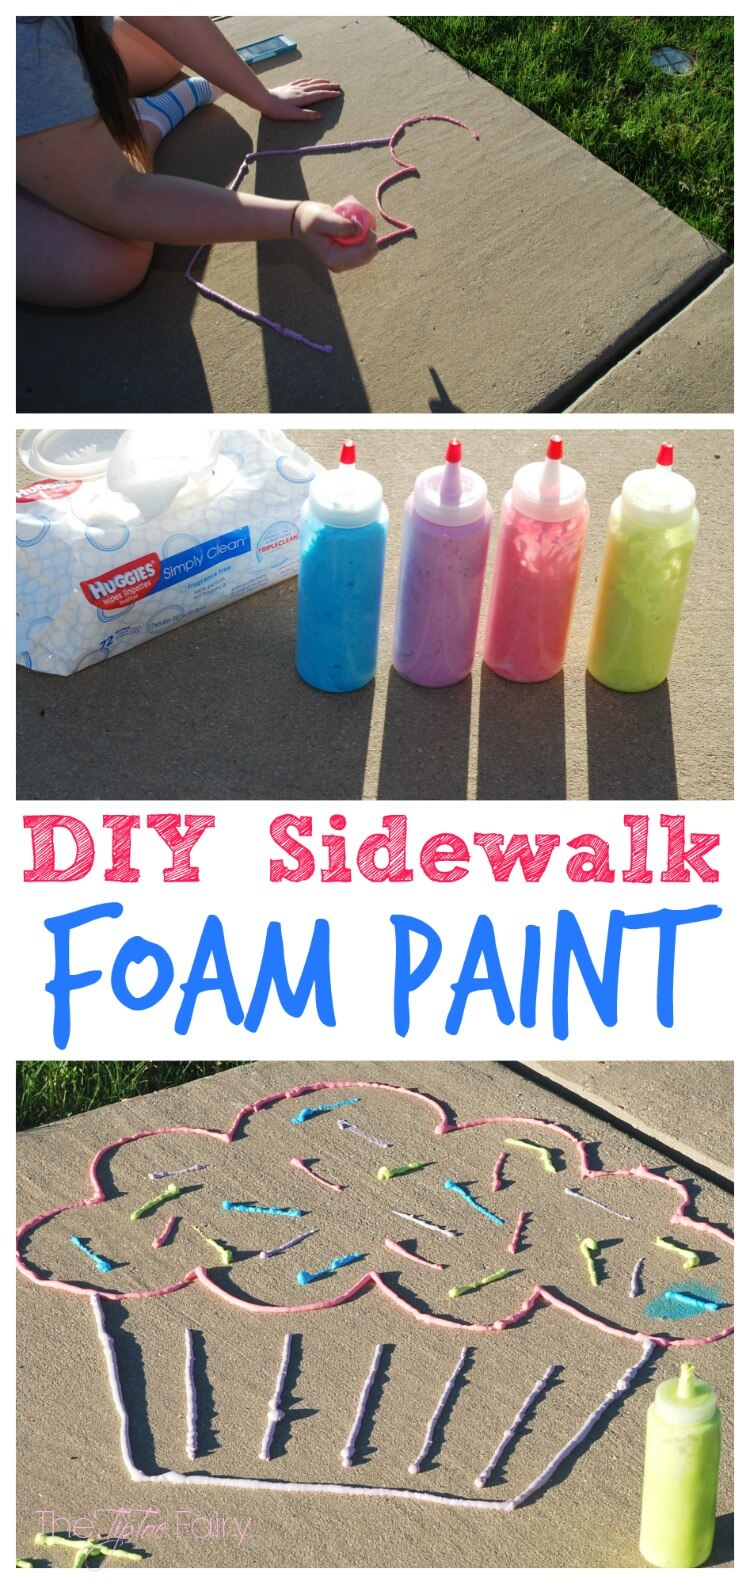 diy-sidewalk-foam-paint-label-2.jpg